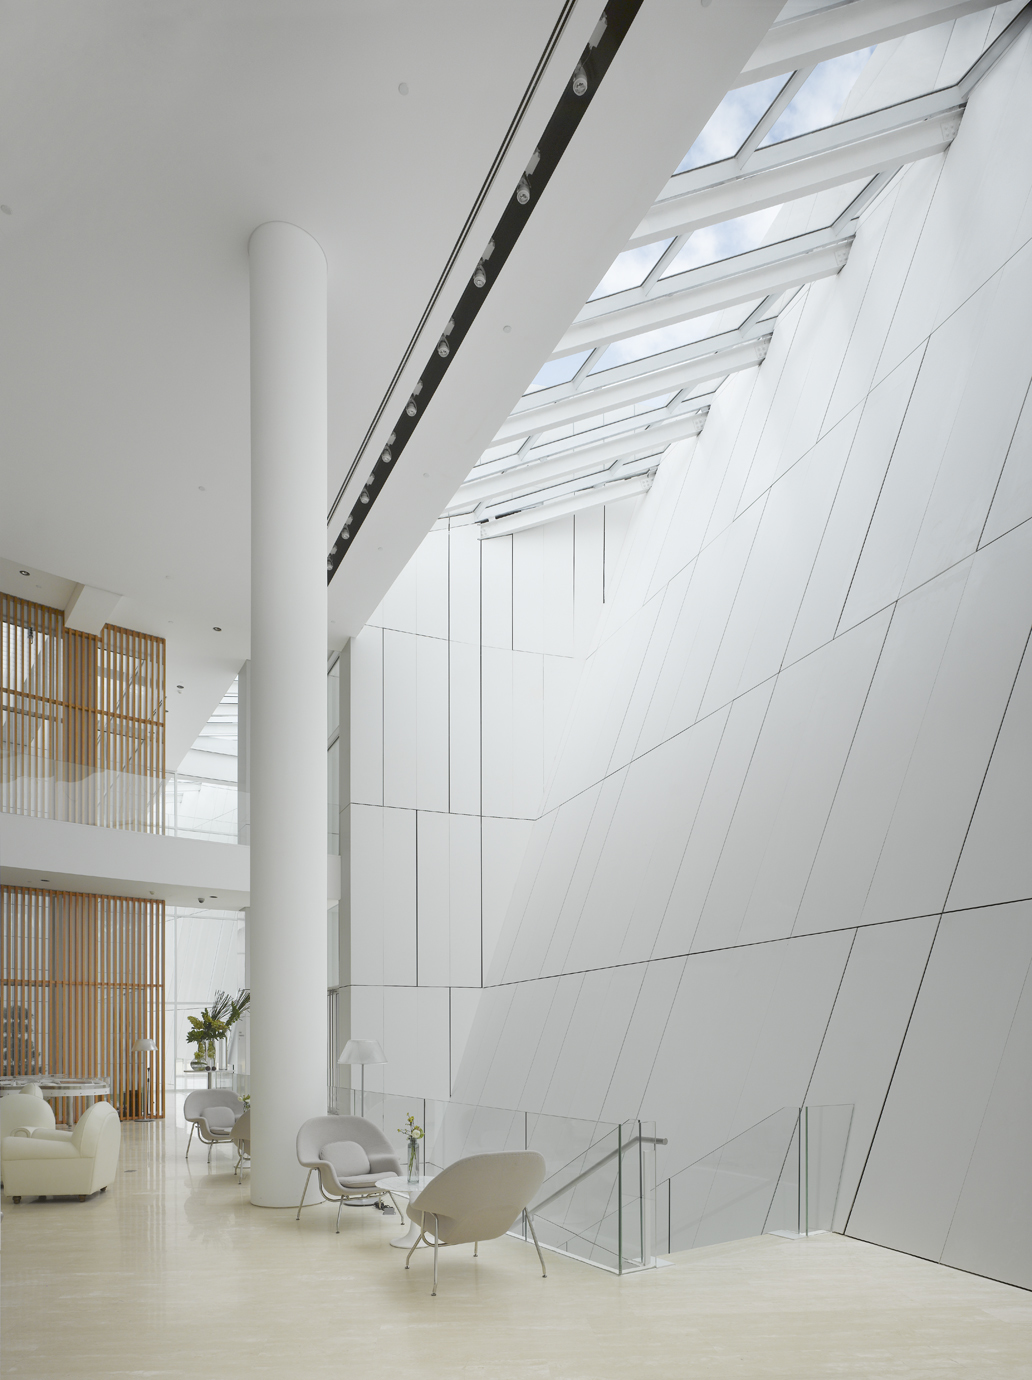 Interior of the OCT Shenzhen Clubhouse - Image courtesy Roland Halbe